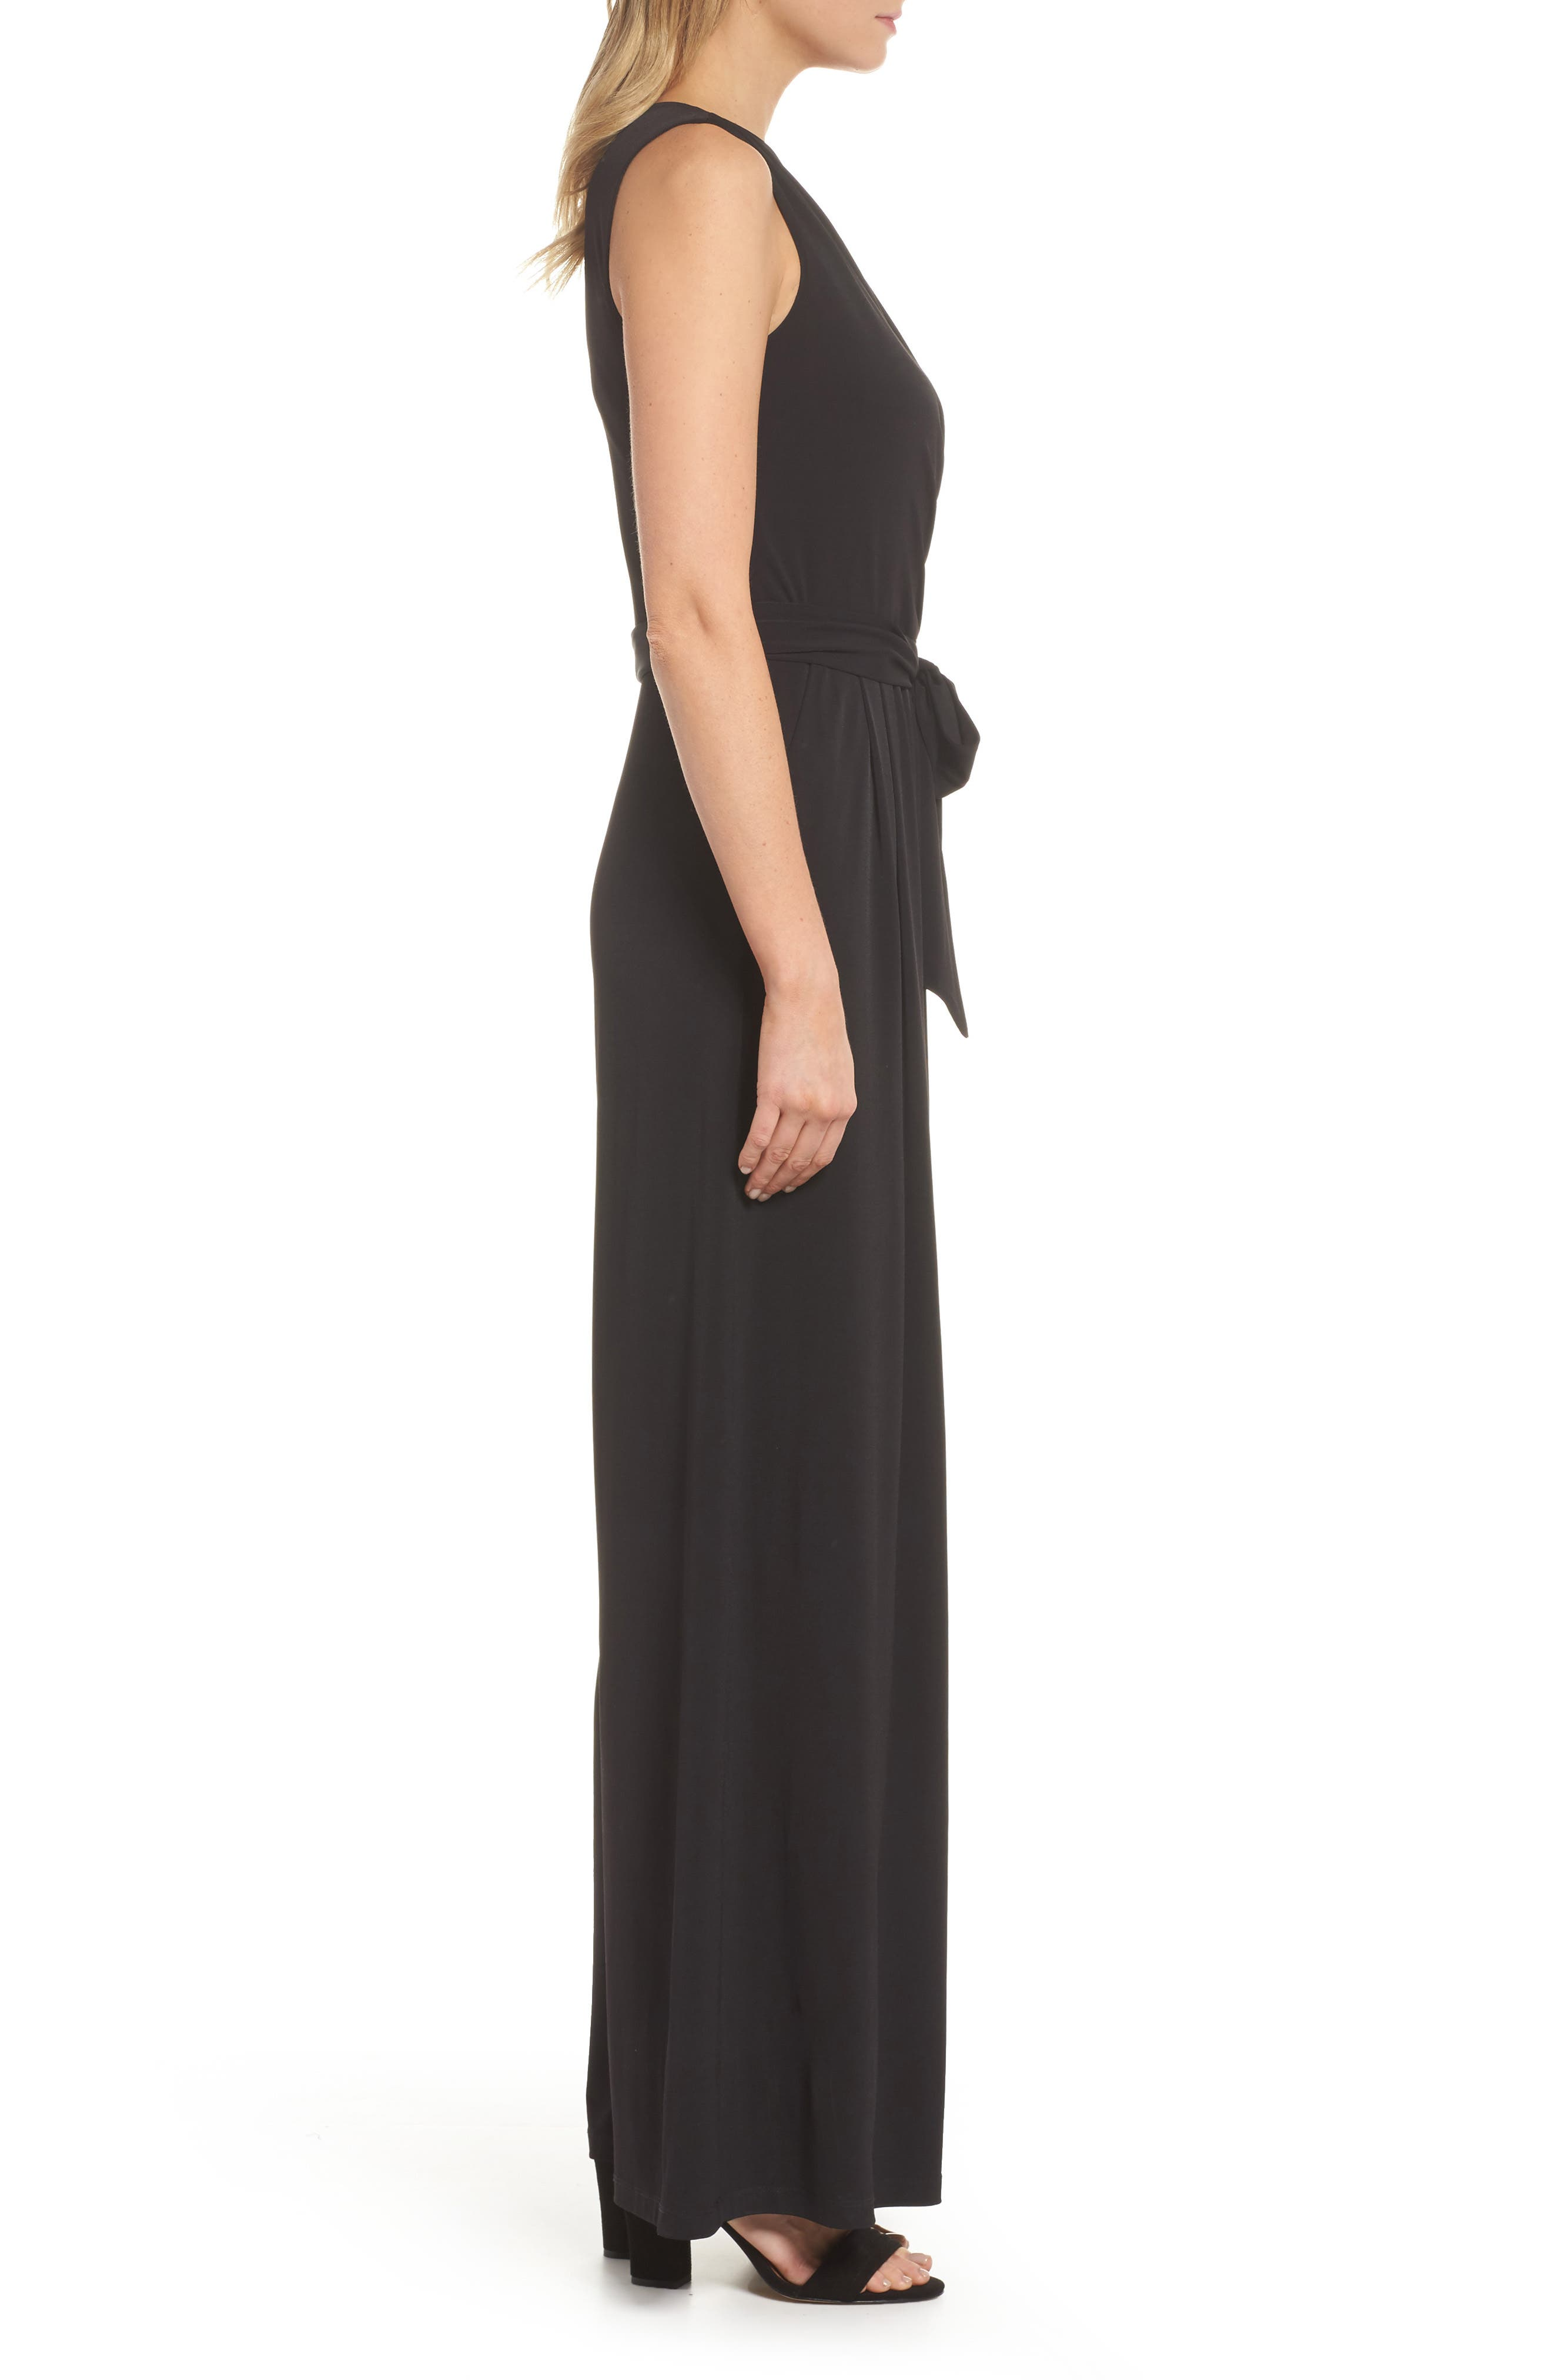 ELIZA J, Faux Wrap Wide Leg Jumpsuit, Alternate thumbnail 4, color, BLACK